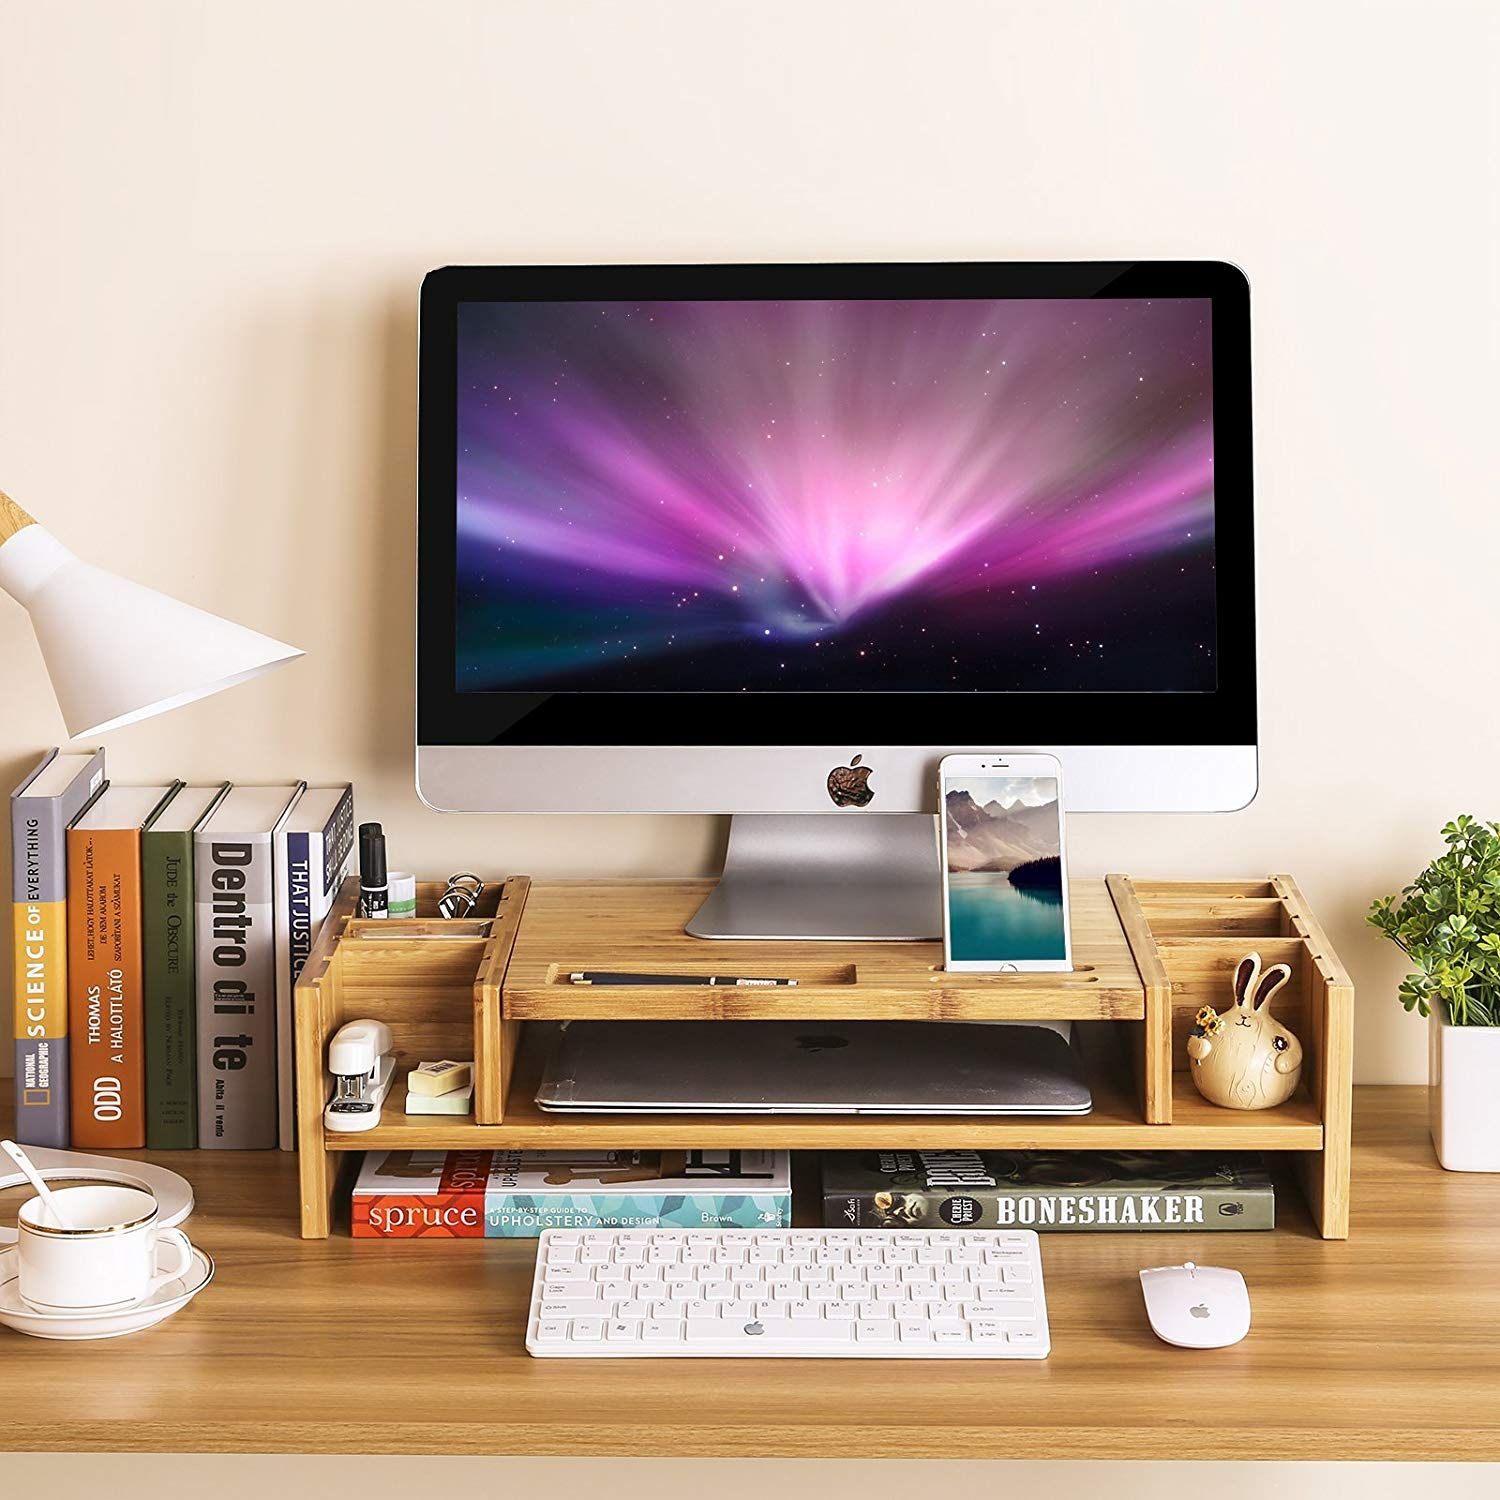 Bamboo Monitor Stand Home Office Design Printer Stand Monitor